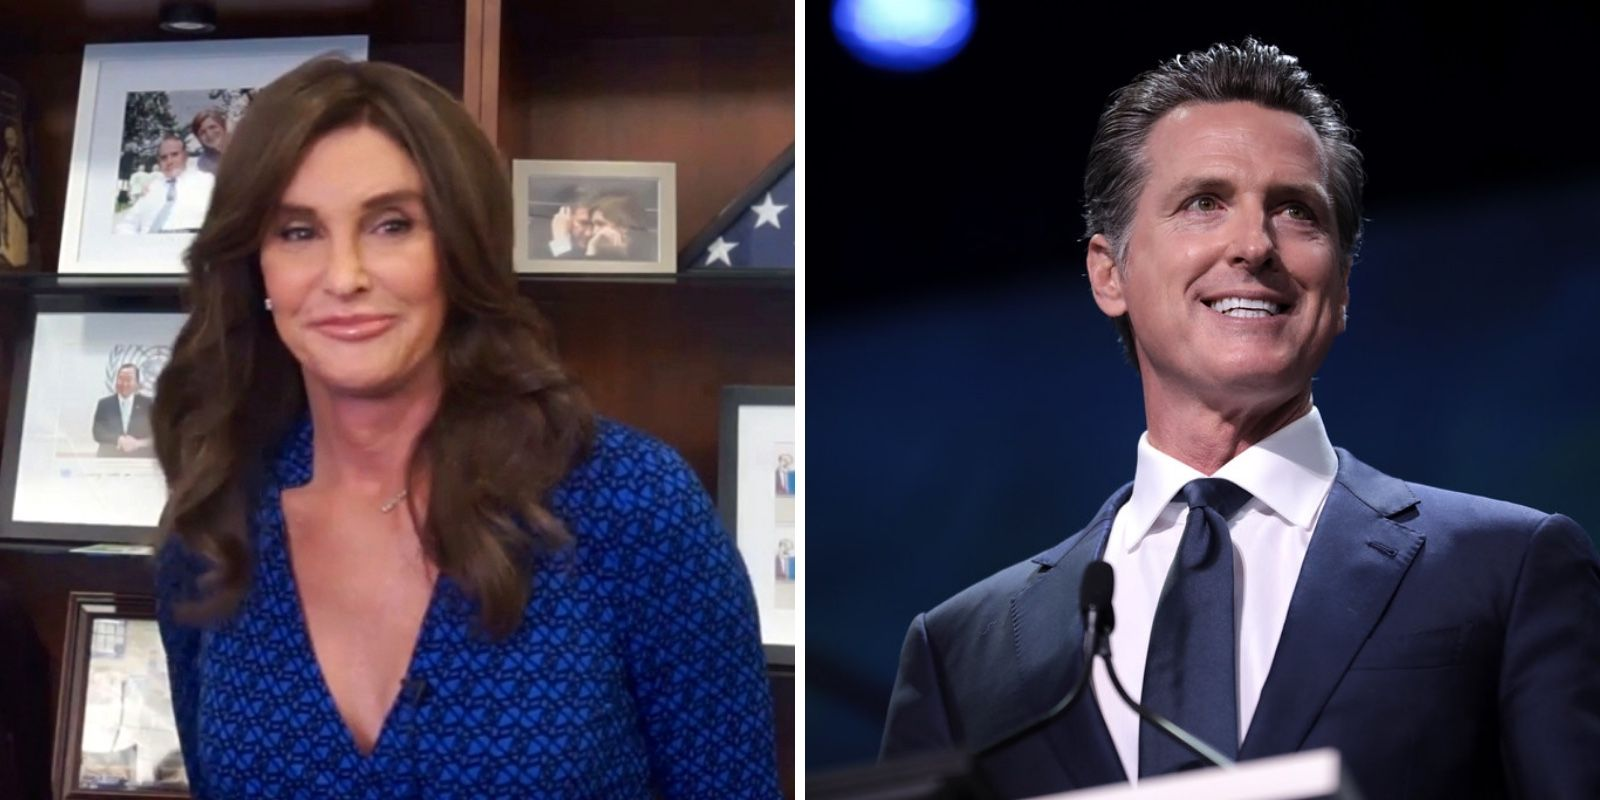 BREAKING: Caitlyn Jenner considering a run for California governor